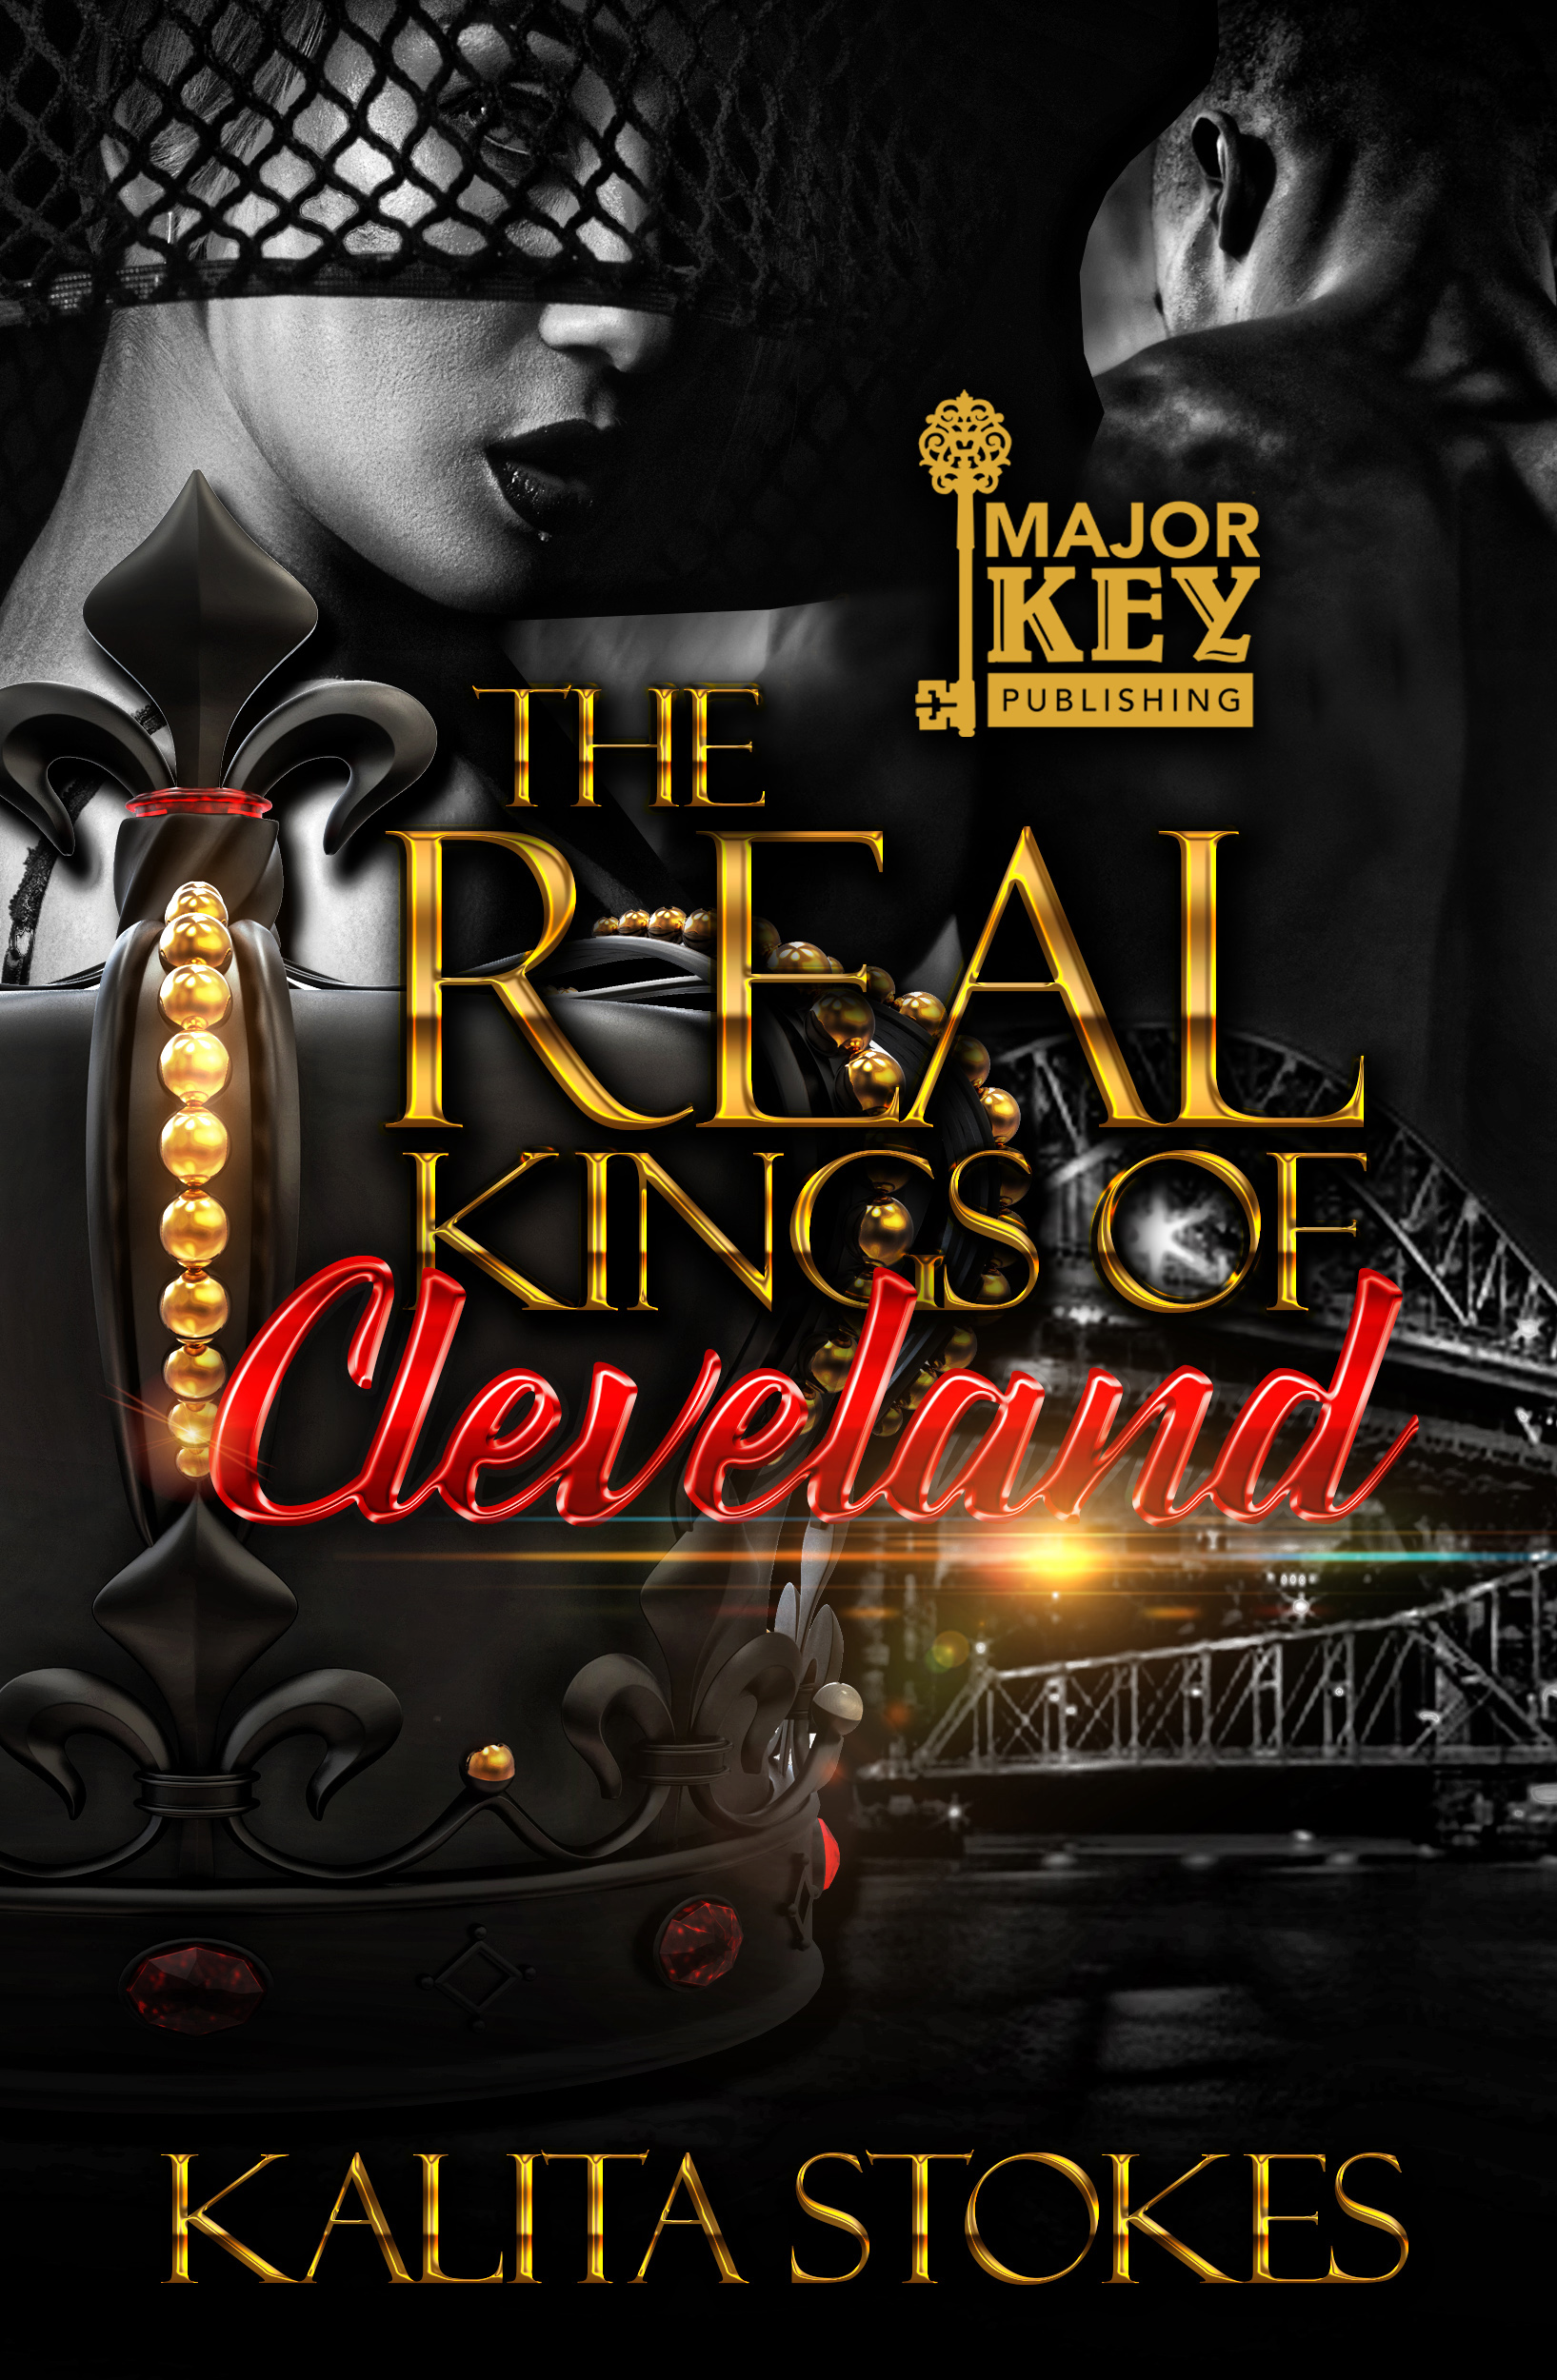 QUIANA_THEREALKINGS